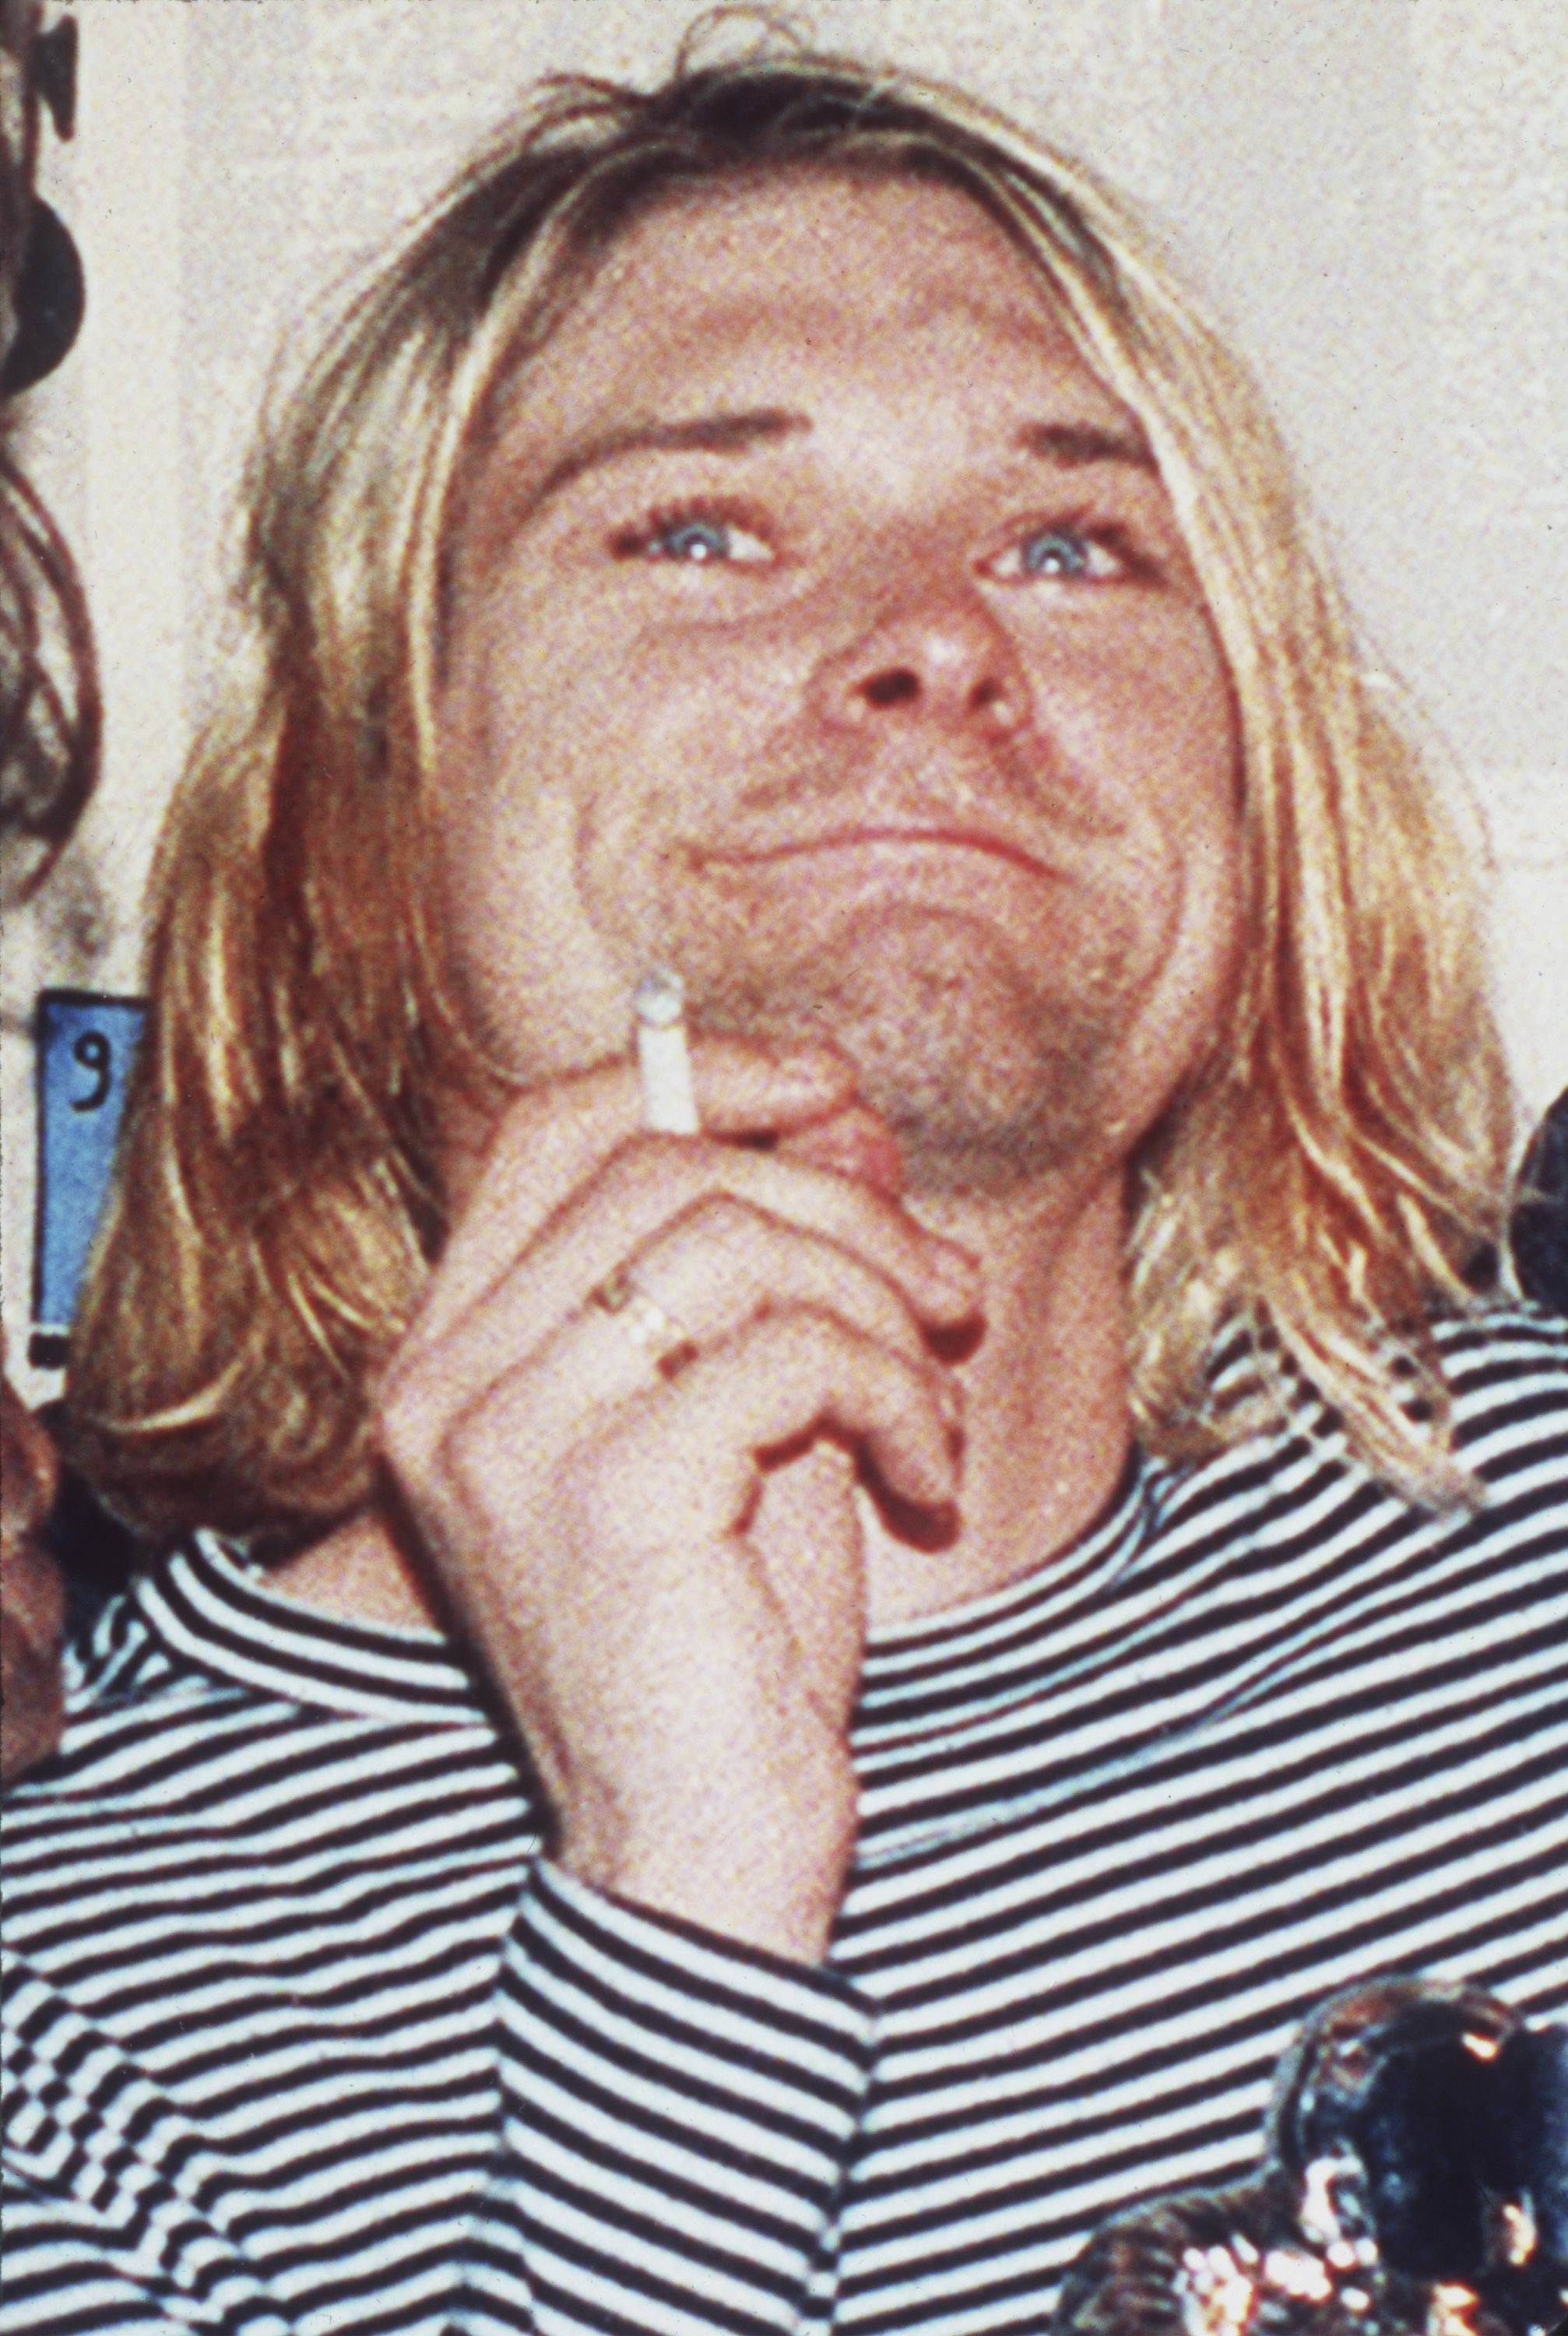 In April Seattle police plan to release new photographs discovered during a re-examination of the death of Nirvana's Kurt Cobain. He was 27 when he died.